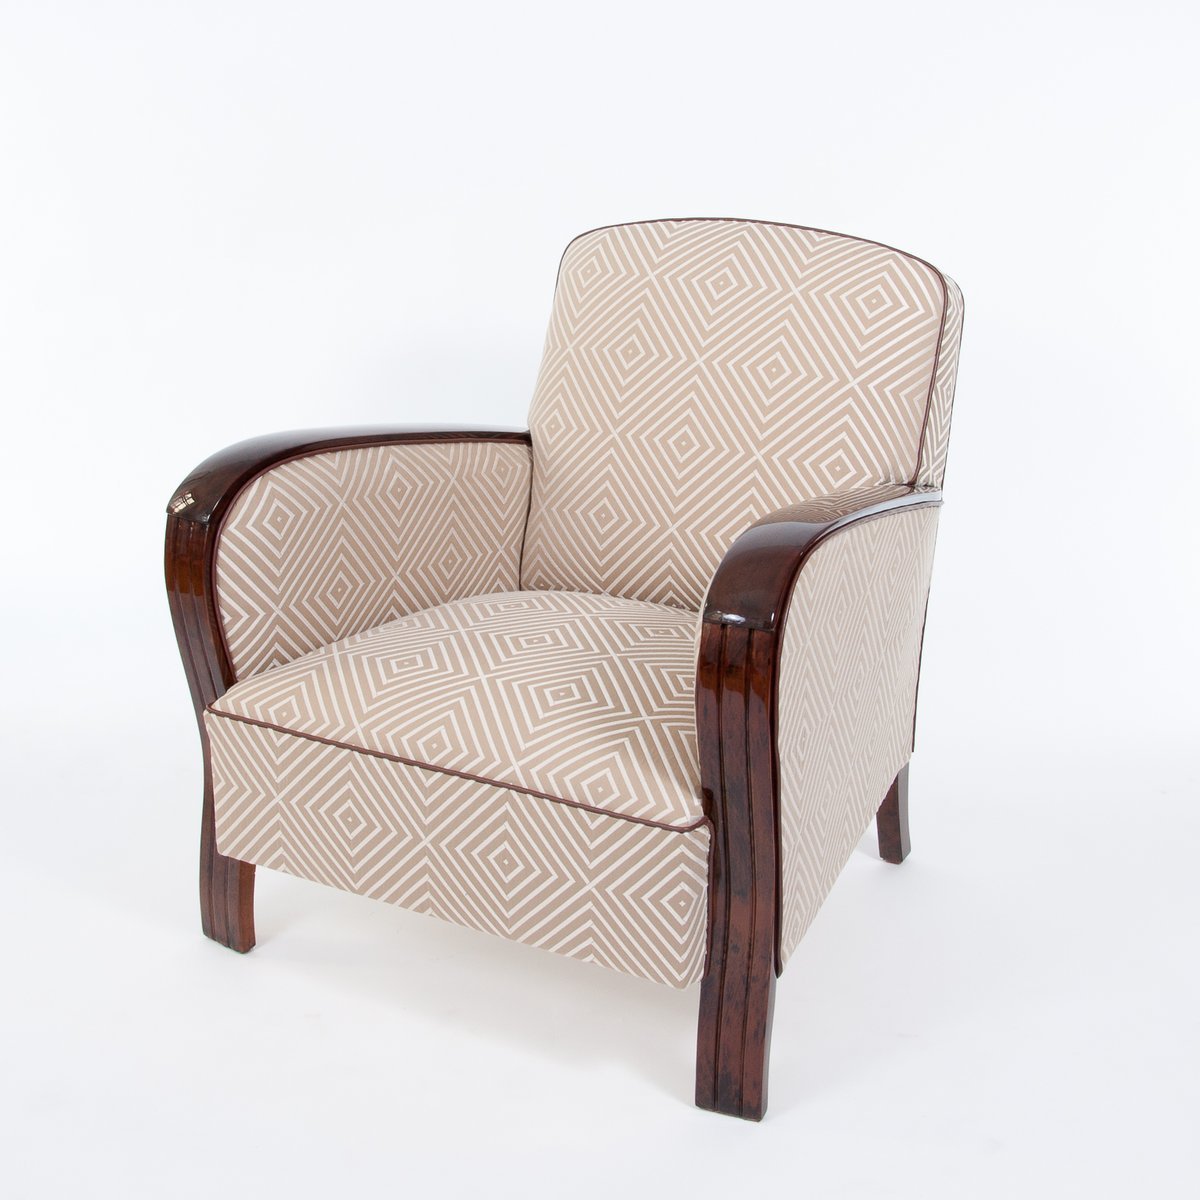 French Art Deco Club Chairs, 1930s, Set Of 2